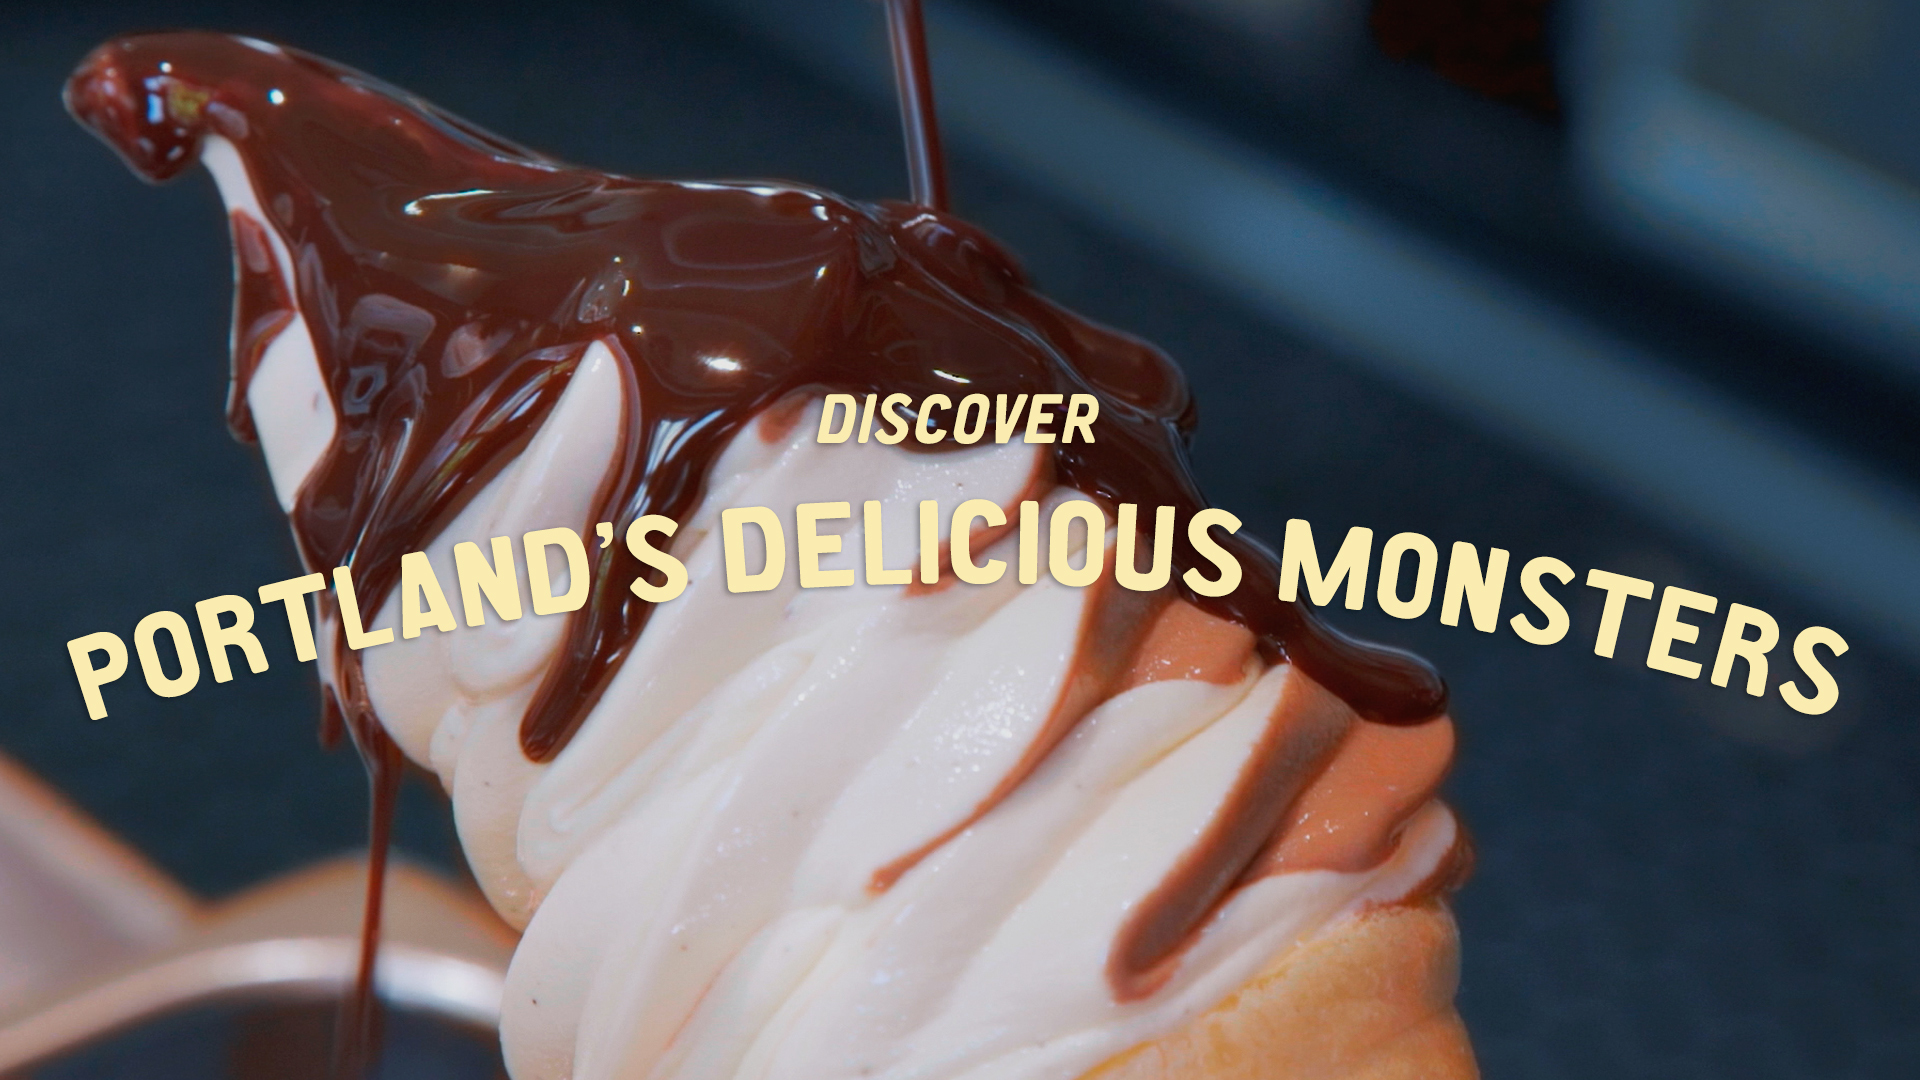 Discover Portland's Delicious Monsters with Chefs Erick Harcey and Gregory Gourdet